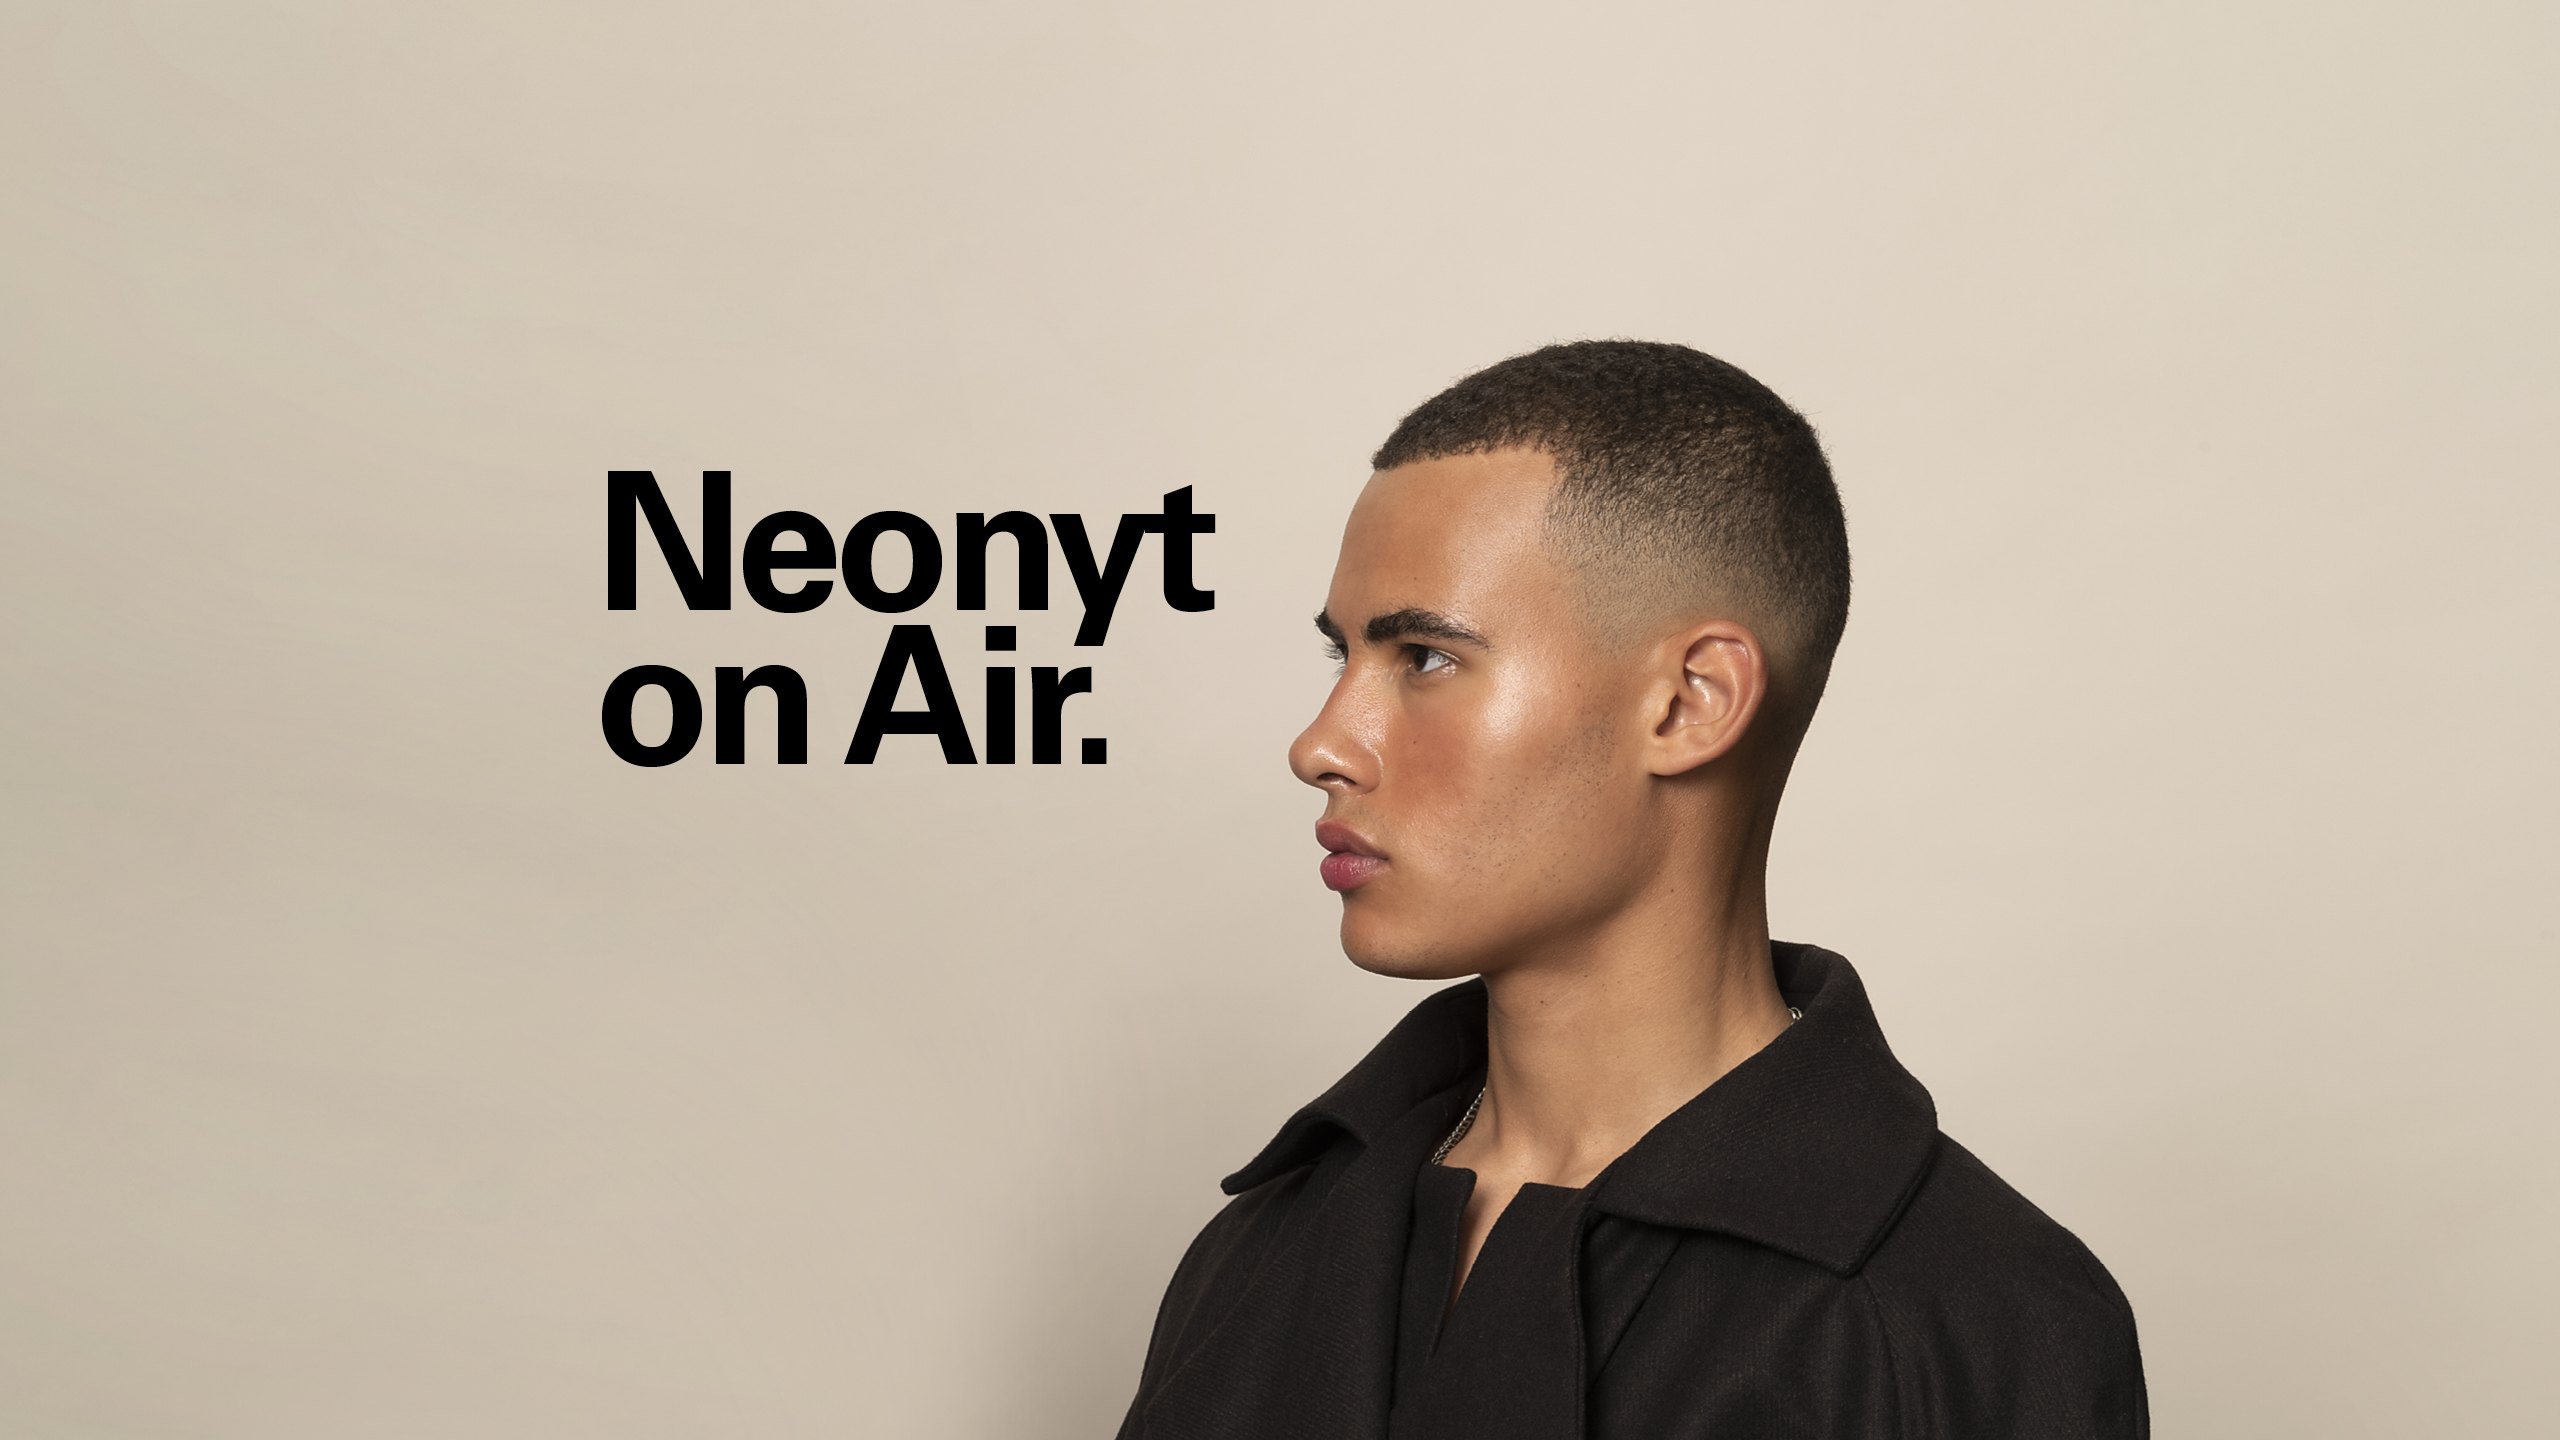 Neonyt on Air 2021